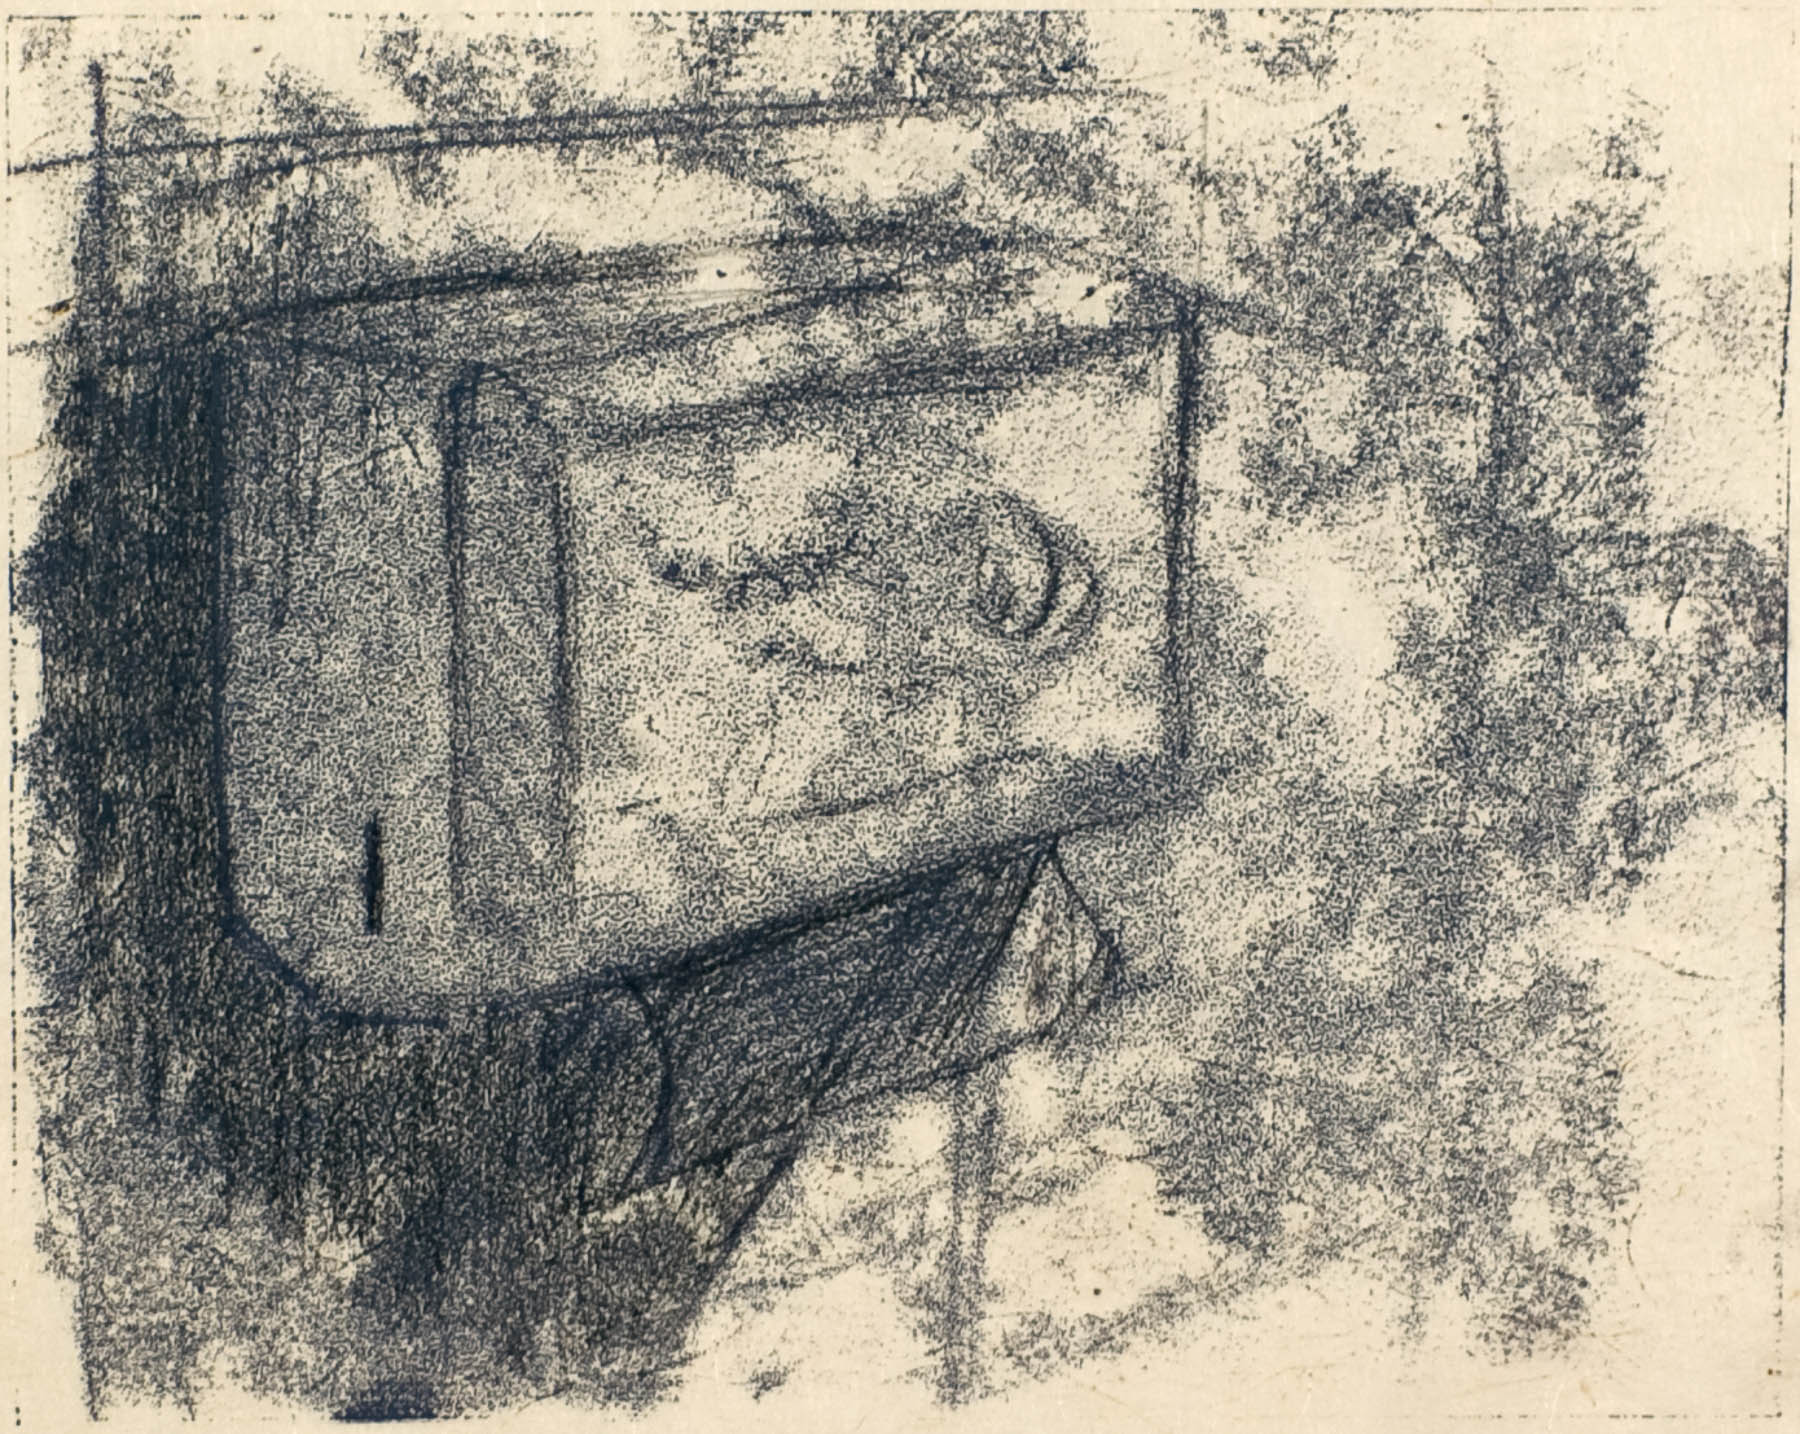 Paper Towel Dispenser, Monotype, Ink on Rice Paper, 5 x 7 inches